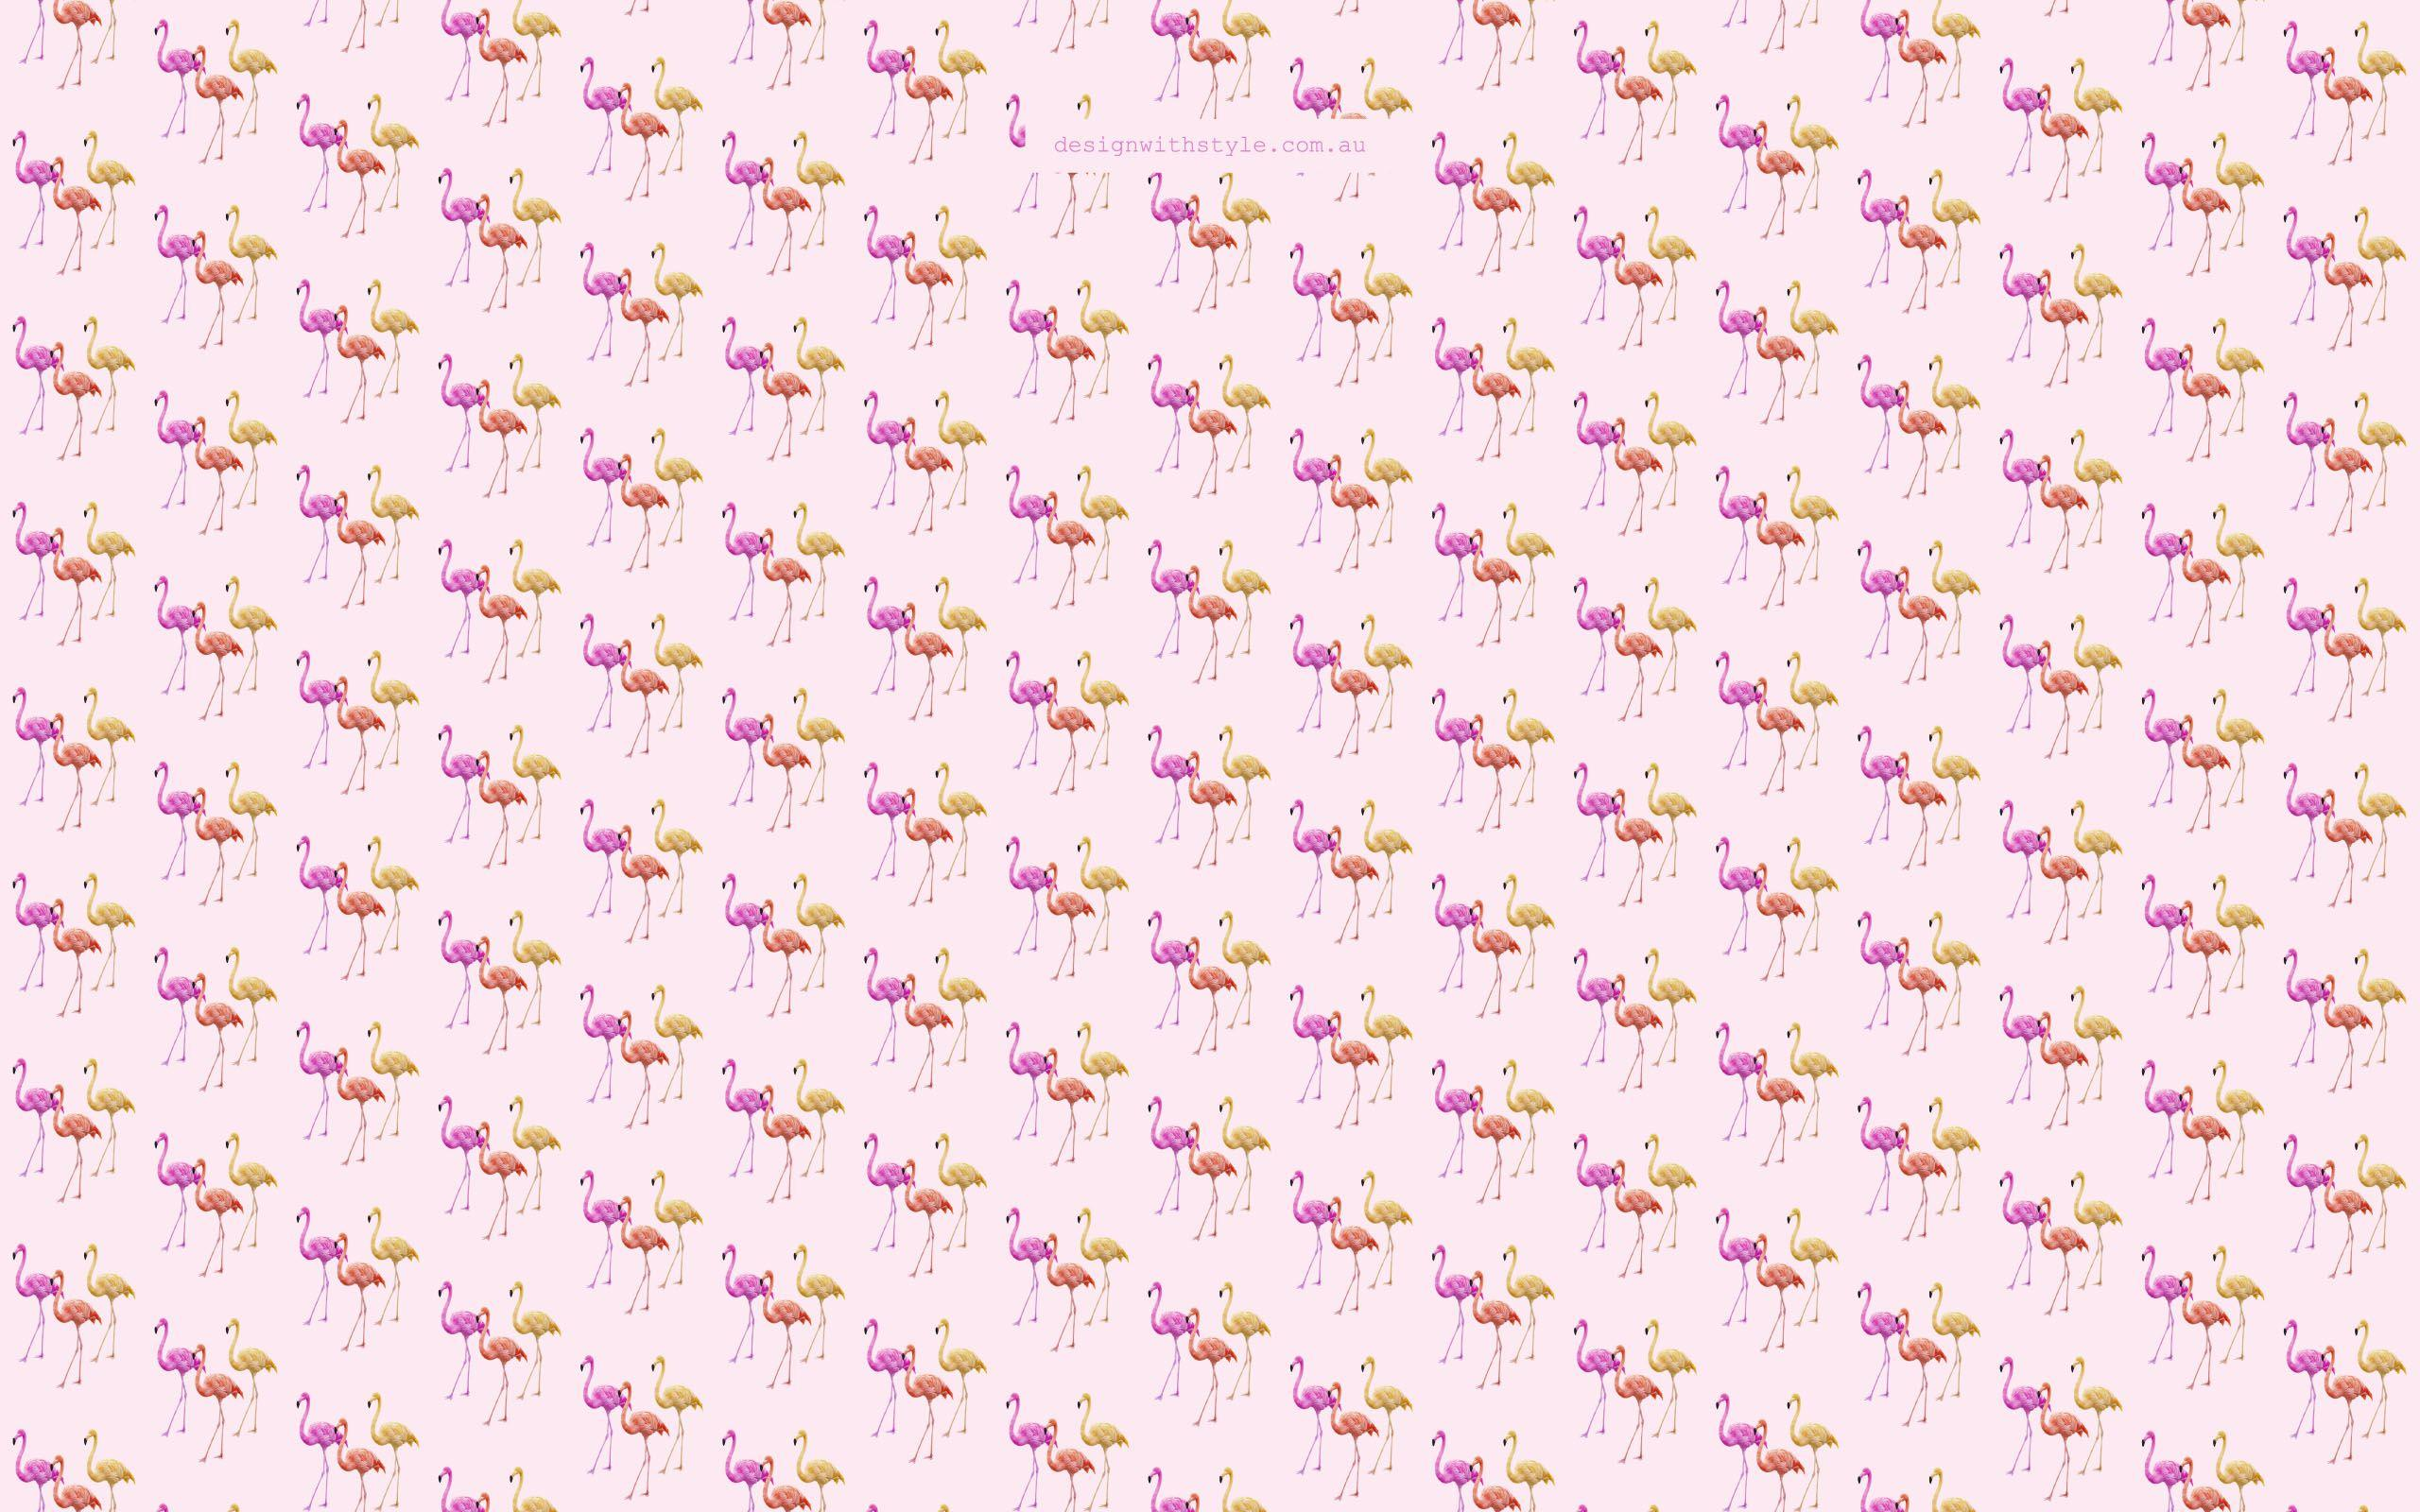 Image For > Retro Flamingo Wallpapers